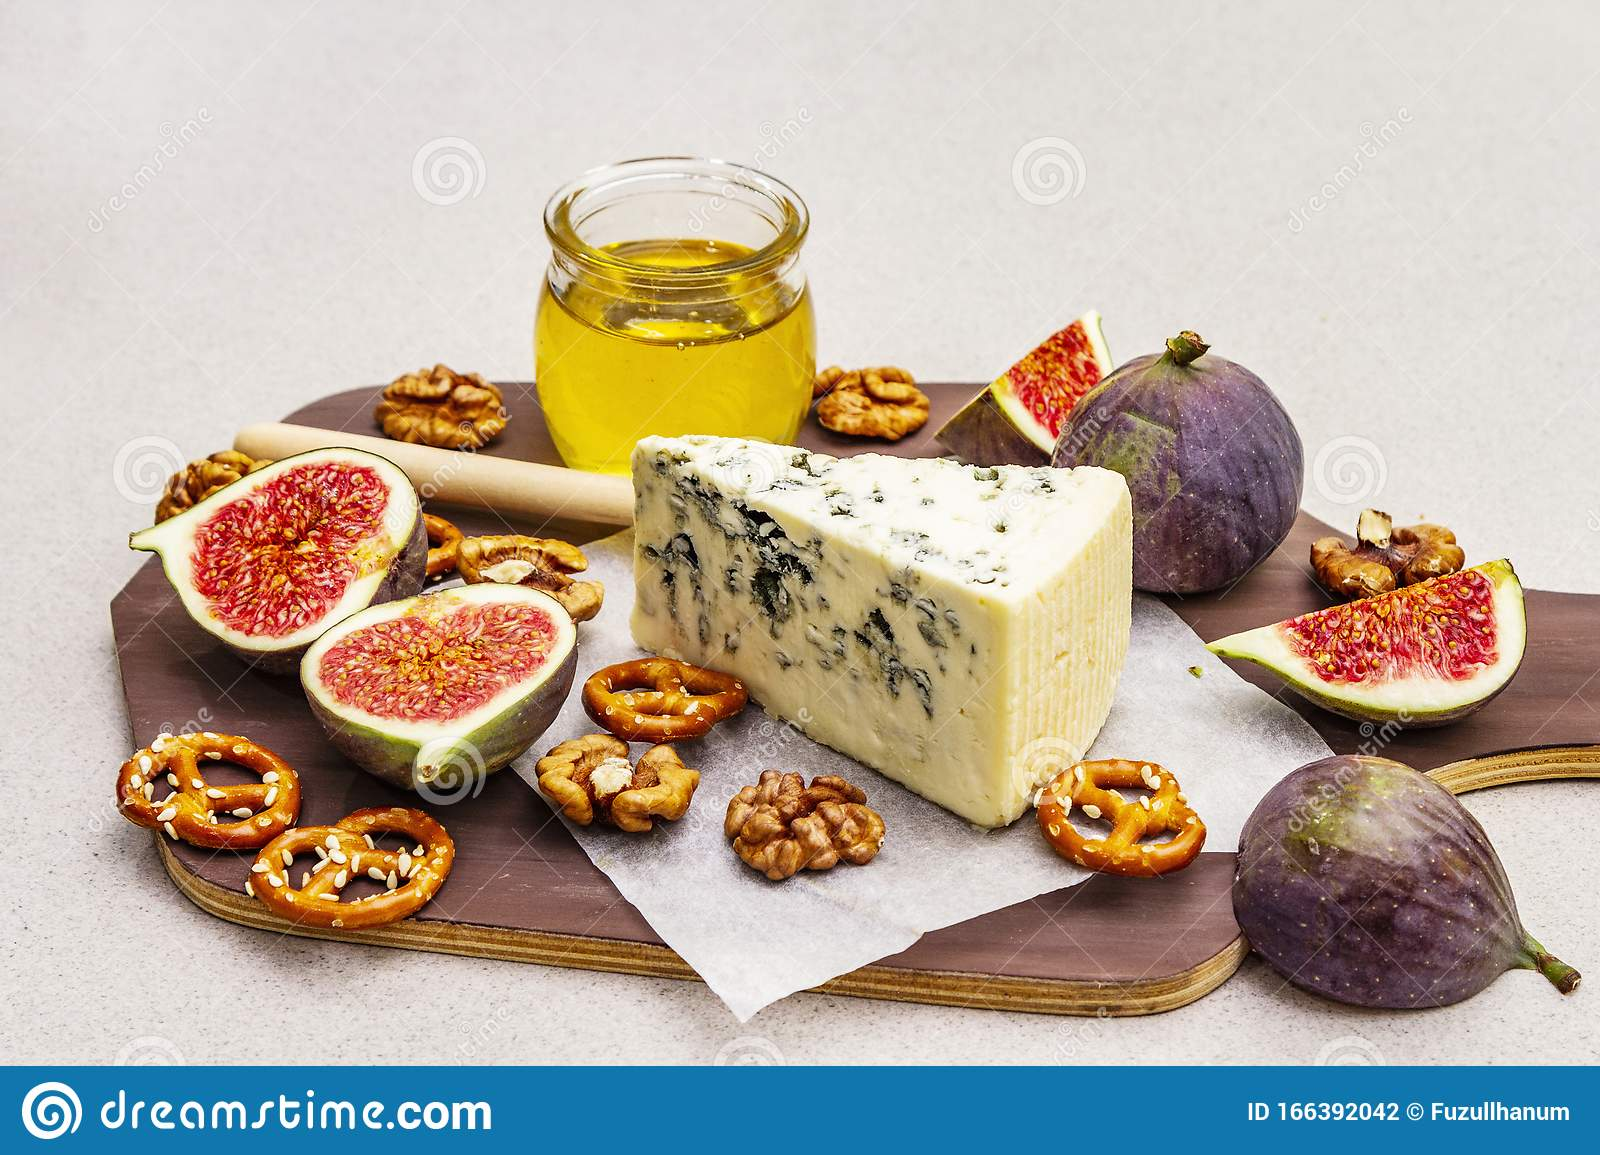 Cheese Platter Board With Blue Cheese Honey Walnuts Figs Pretzels Stock Photo Image Of Dish Board 166392042